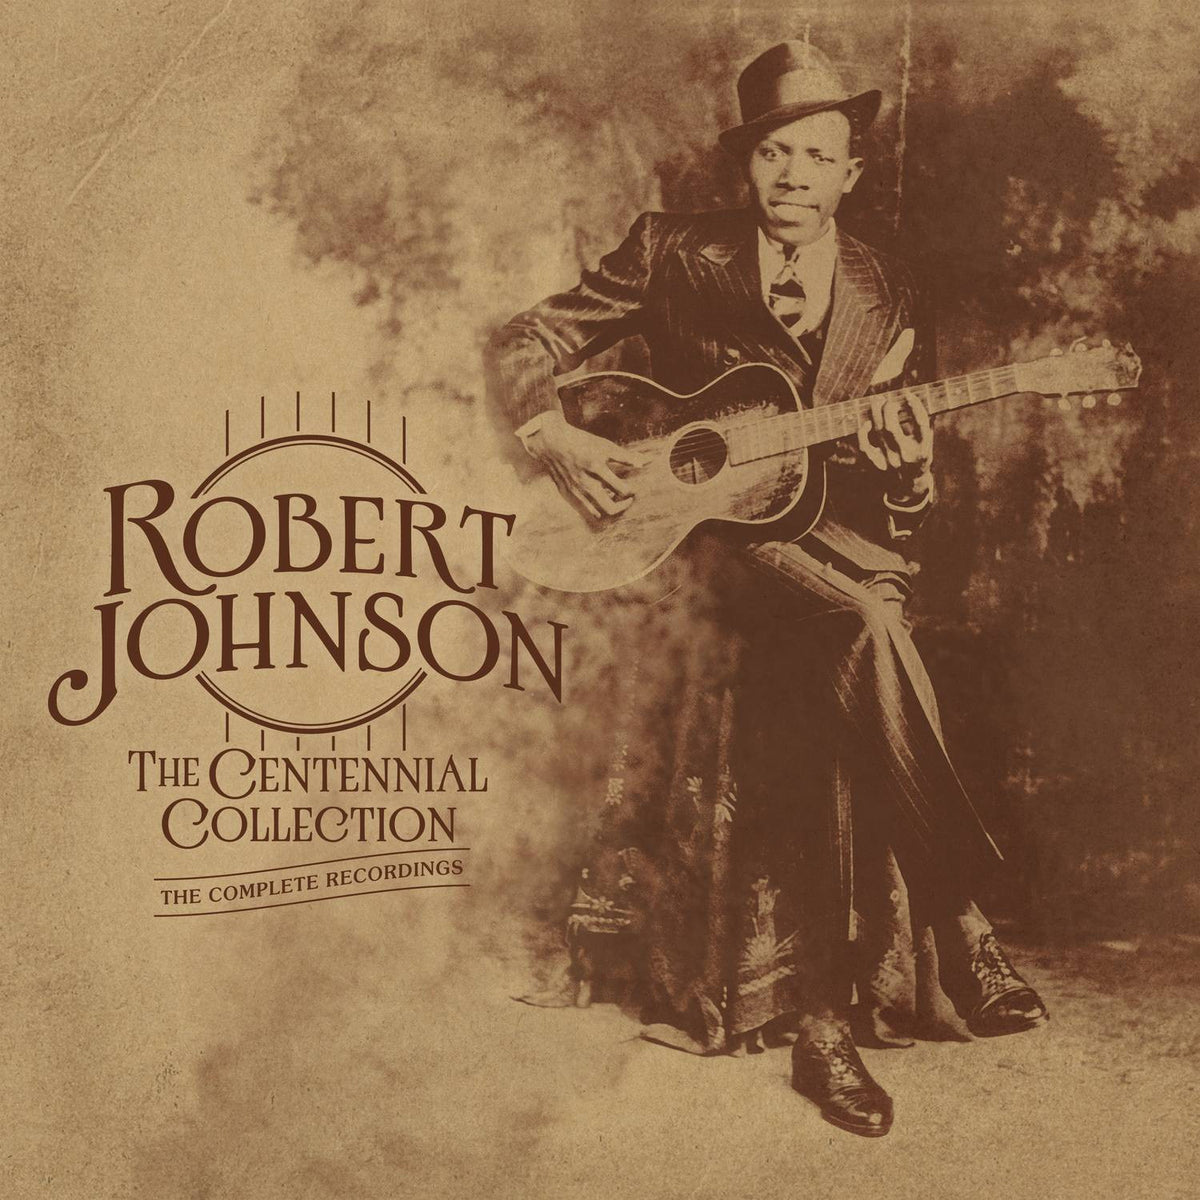 Robert Johnson: The Centennial Collection - The Complete Recordings Vinyl 3LP (Record Store Day)